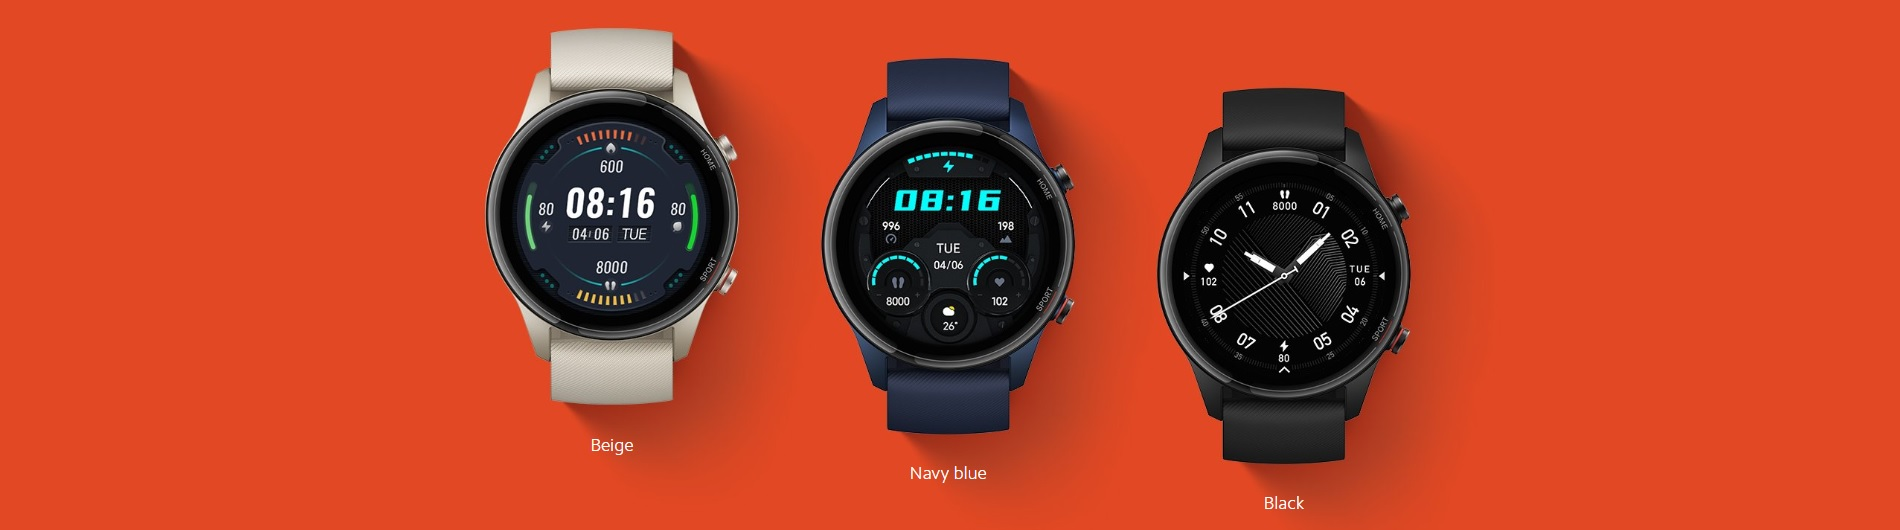 Xiaomi Mi Watch smartwatch